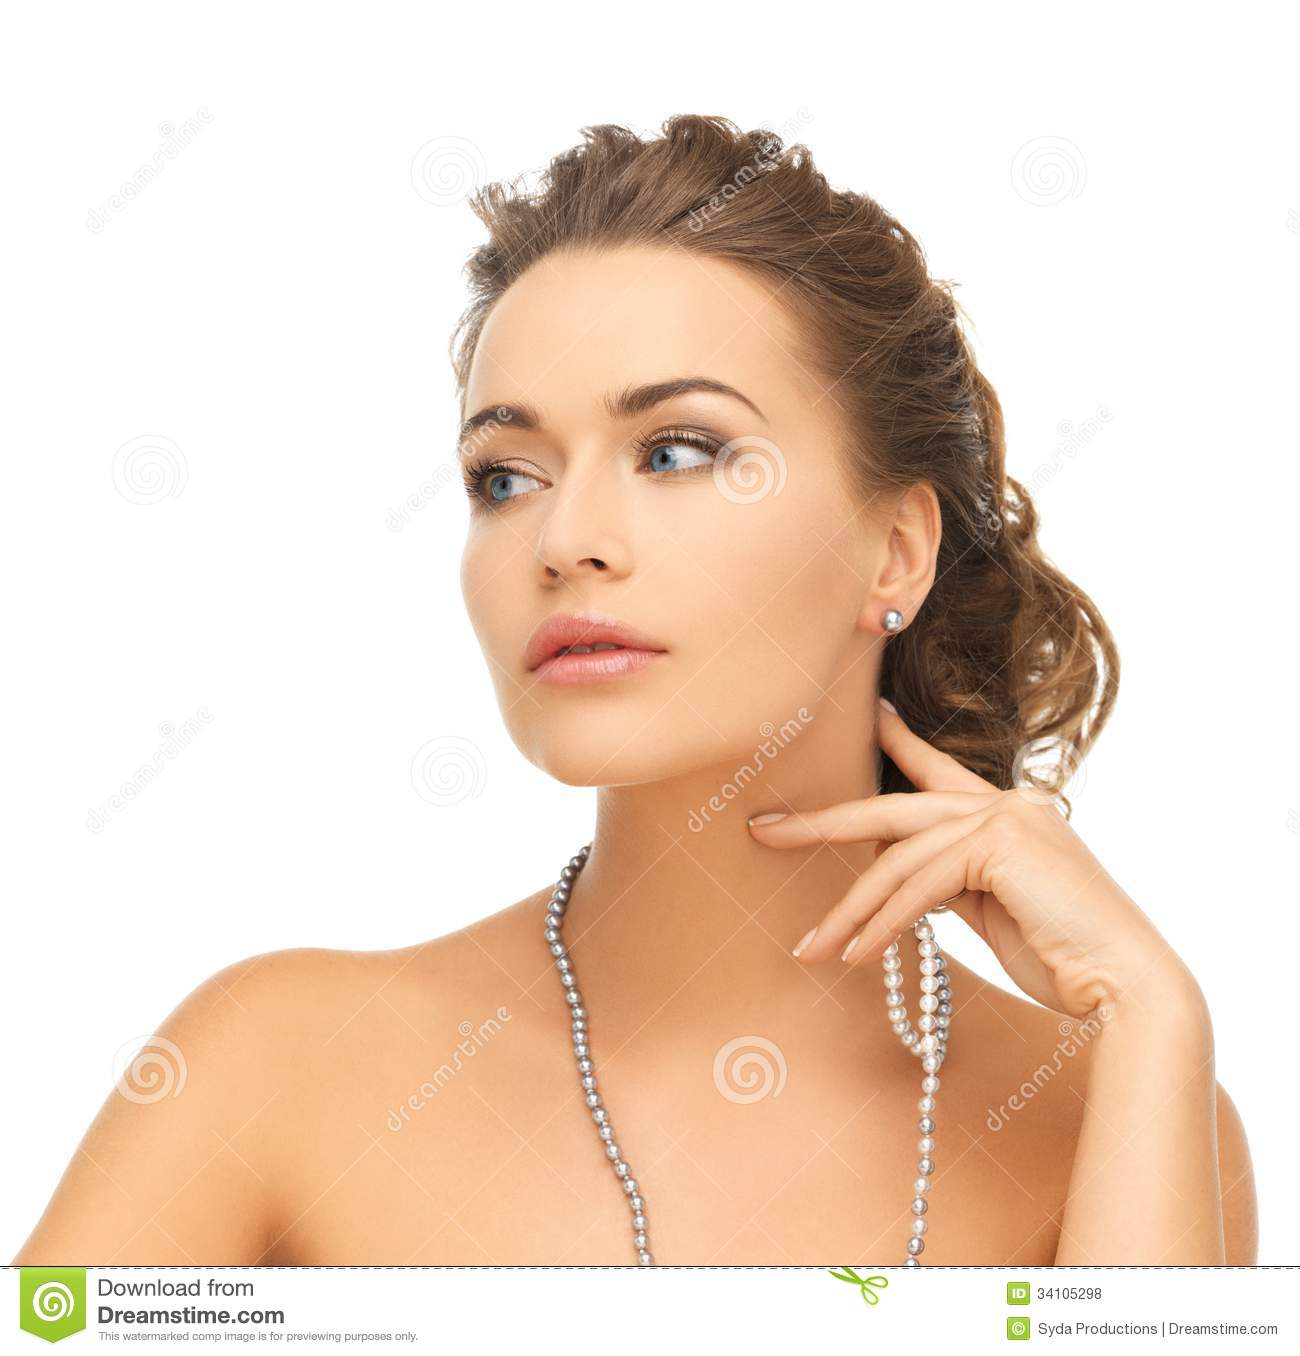 Bride and wedding concept beautiful woman wearing pearl earrings and